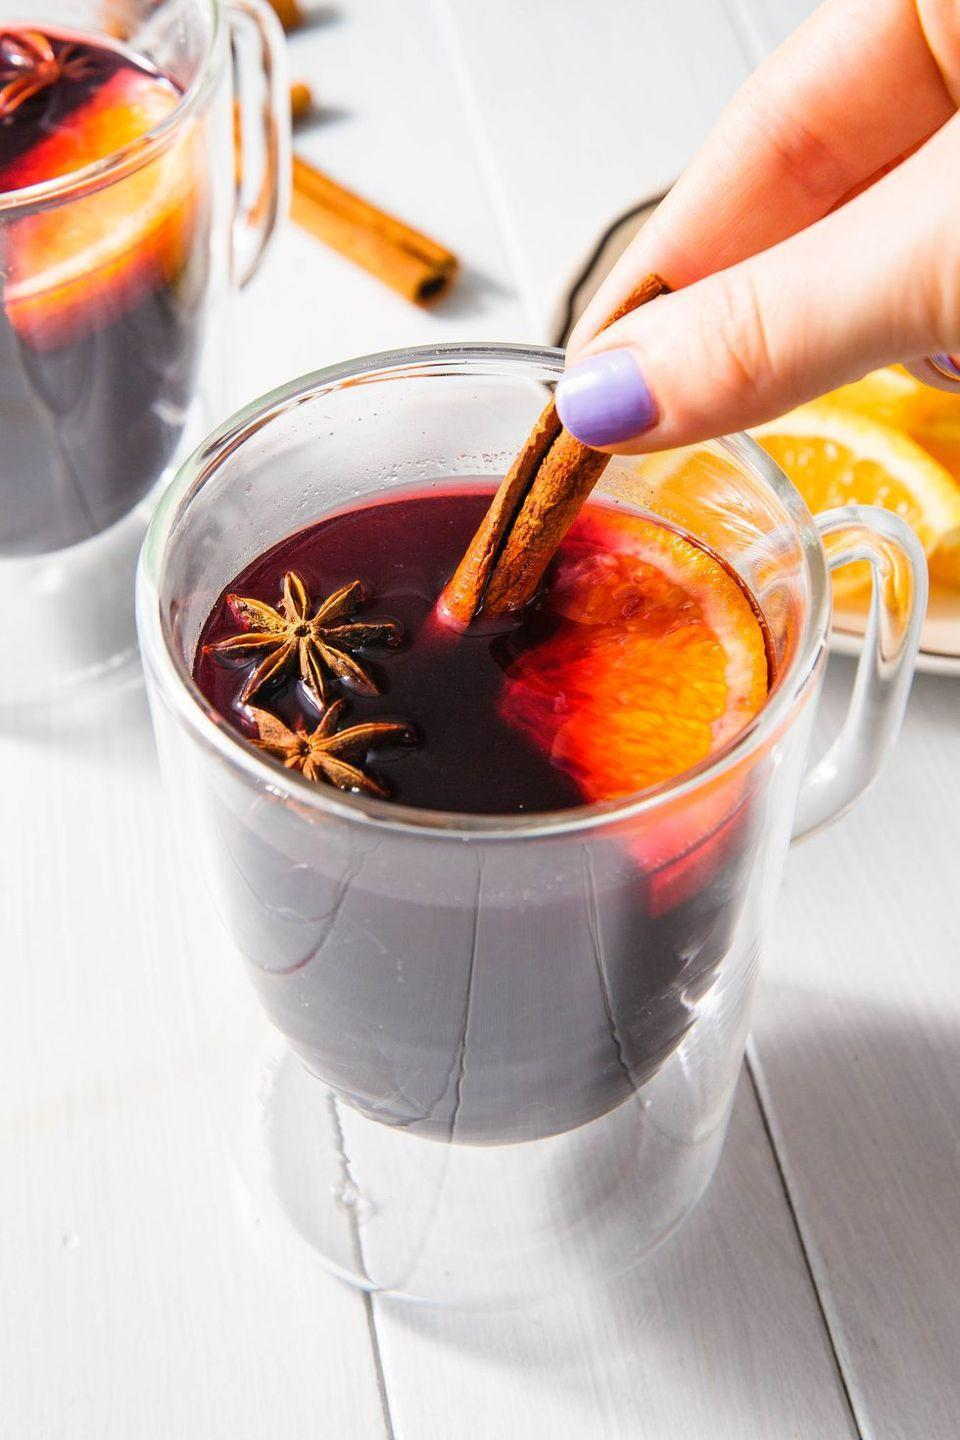 "<p>The ultimate cozy fall drink. </p><p>Get the recipe from <a href=""https://www.delish.com/cooking/recipe-ideas/a23364385/mulled-wine-recipe/"" rel=""nofollow noopener"" target=""_blank"" data-ylk=""slk:Delish"" class=""link rapid-noclick-resp"">Delish</a>. </p>"